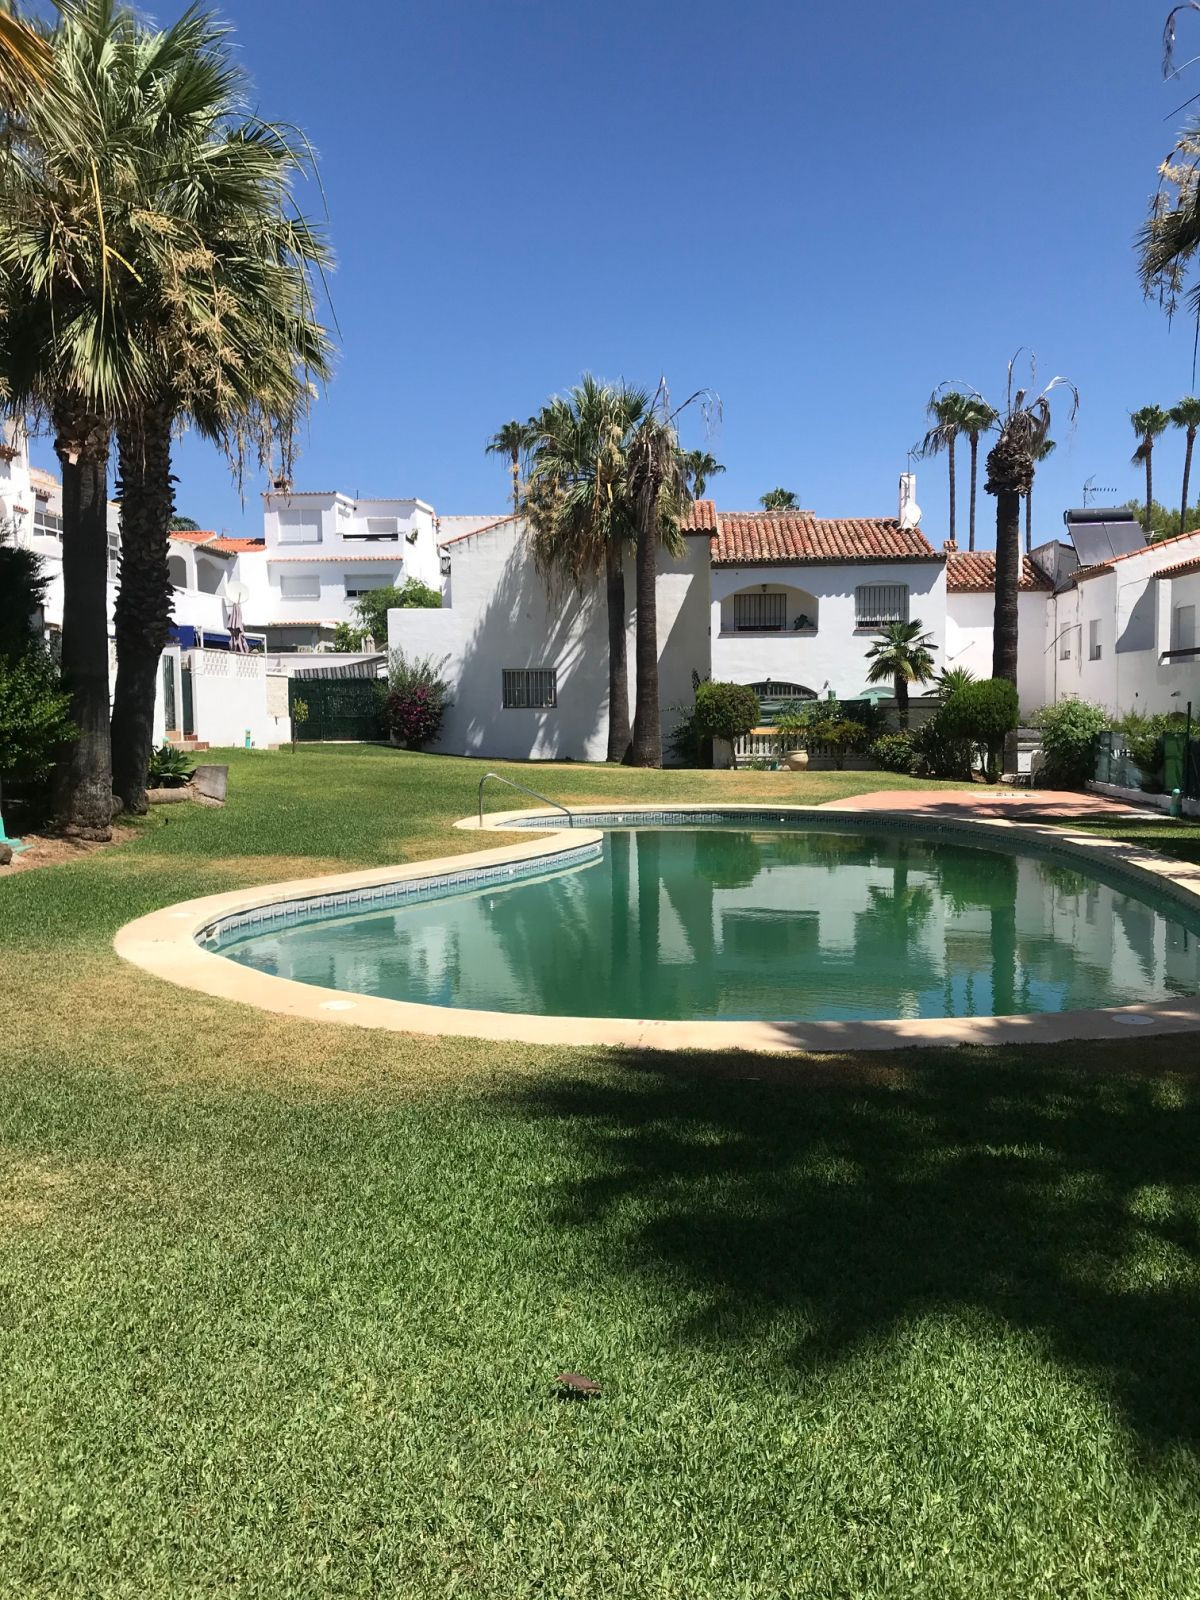 Townhouse to reform. The first level offers a spacious living room with direct access to the terrace,Spain